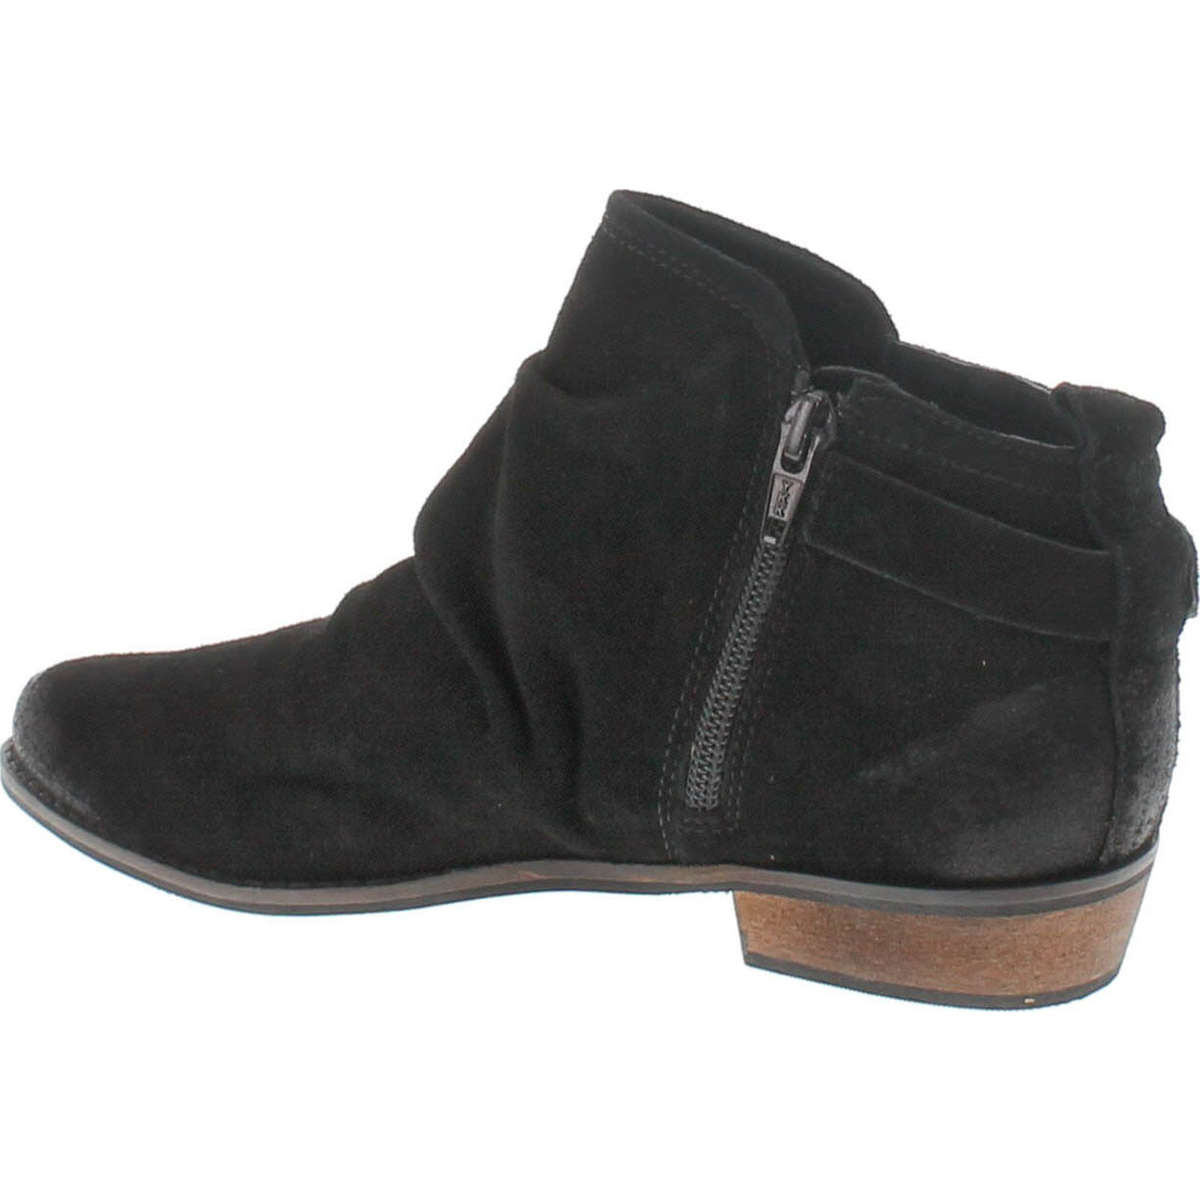 Naughty Monkey Women's Buckle Me up Ankle Bootie